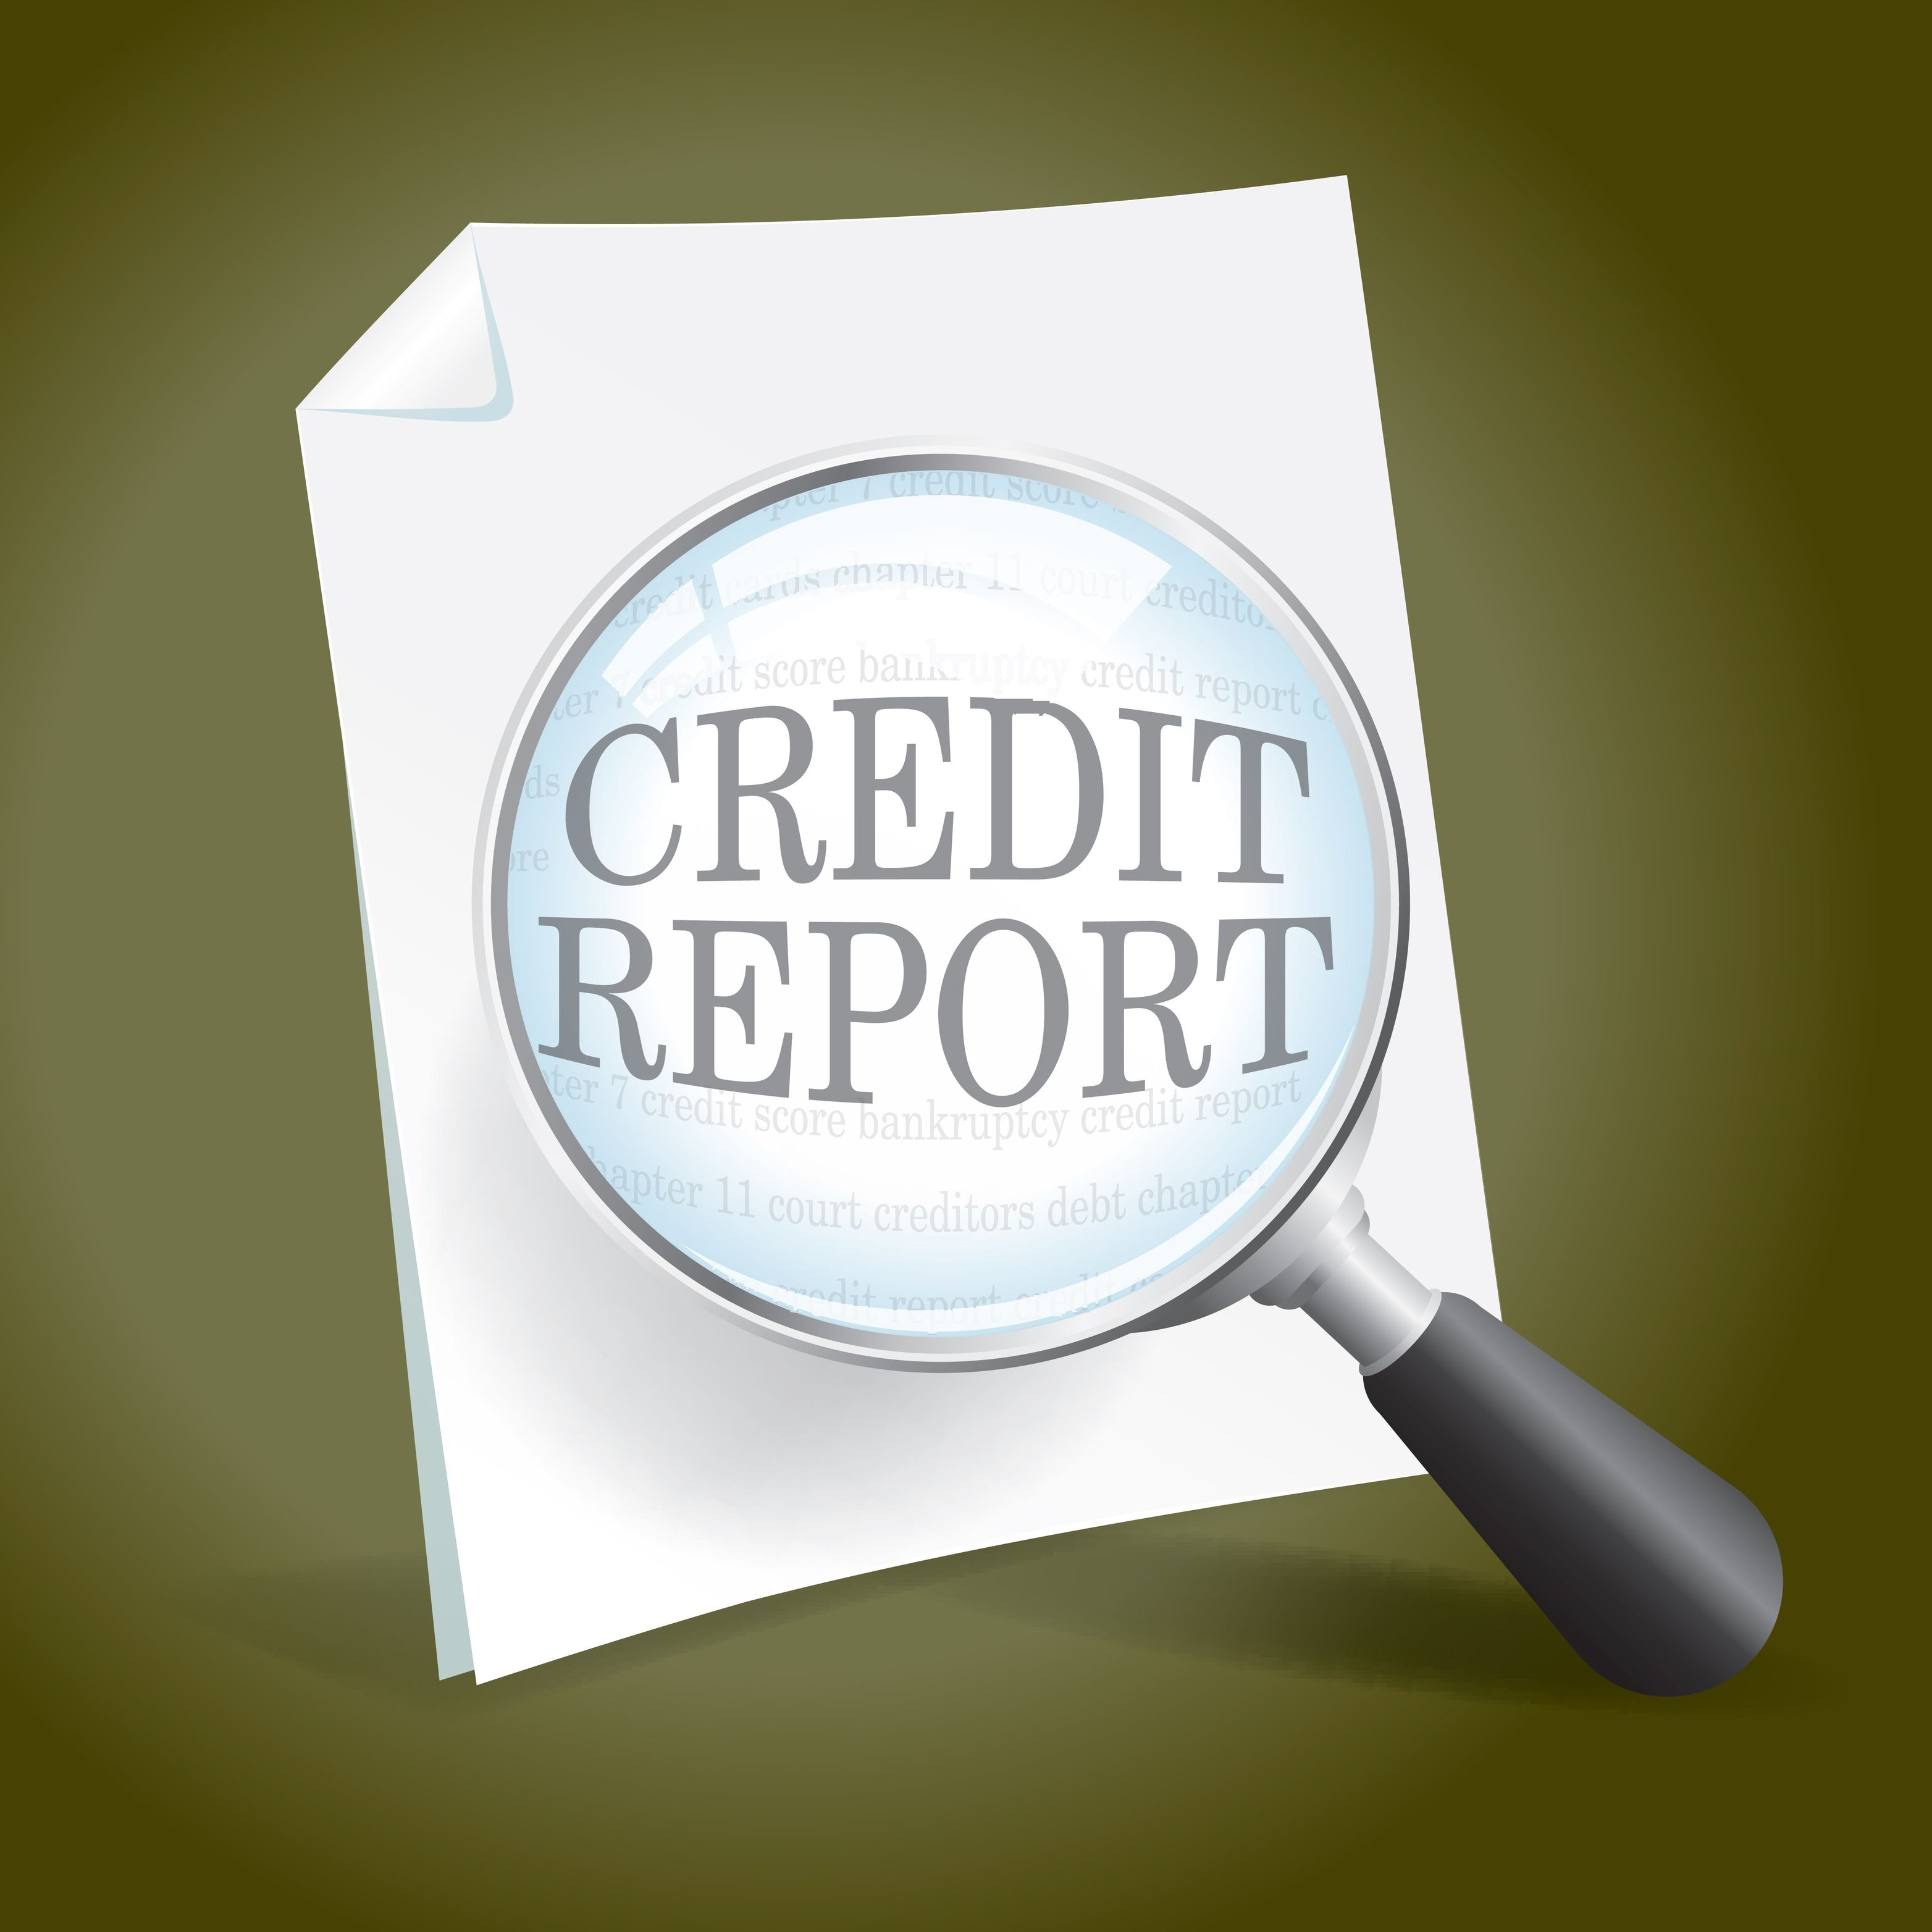 Why retirees need good credit scores argi financial group why retirees need good credit scores altavistaventures Gallery